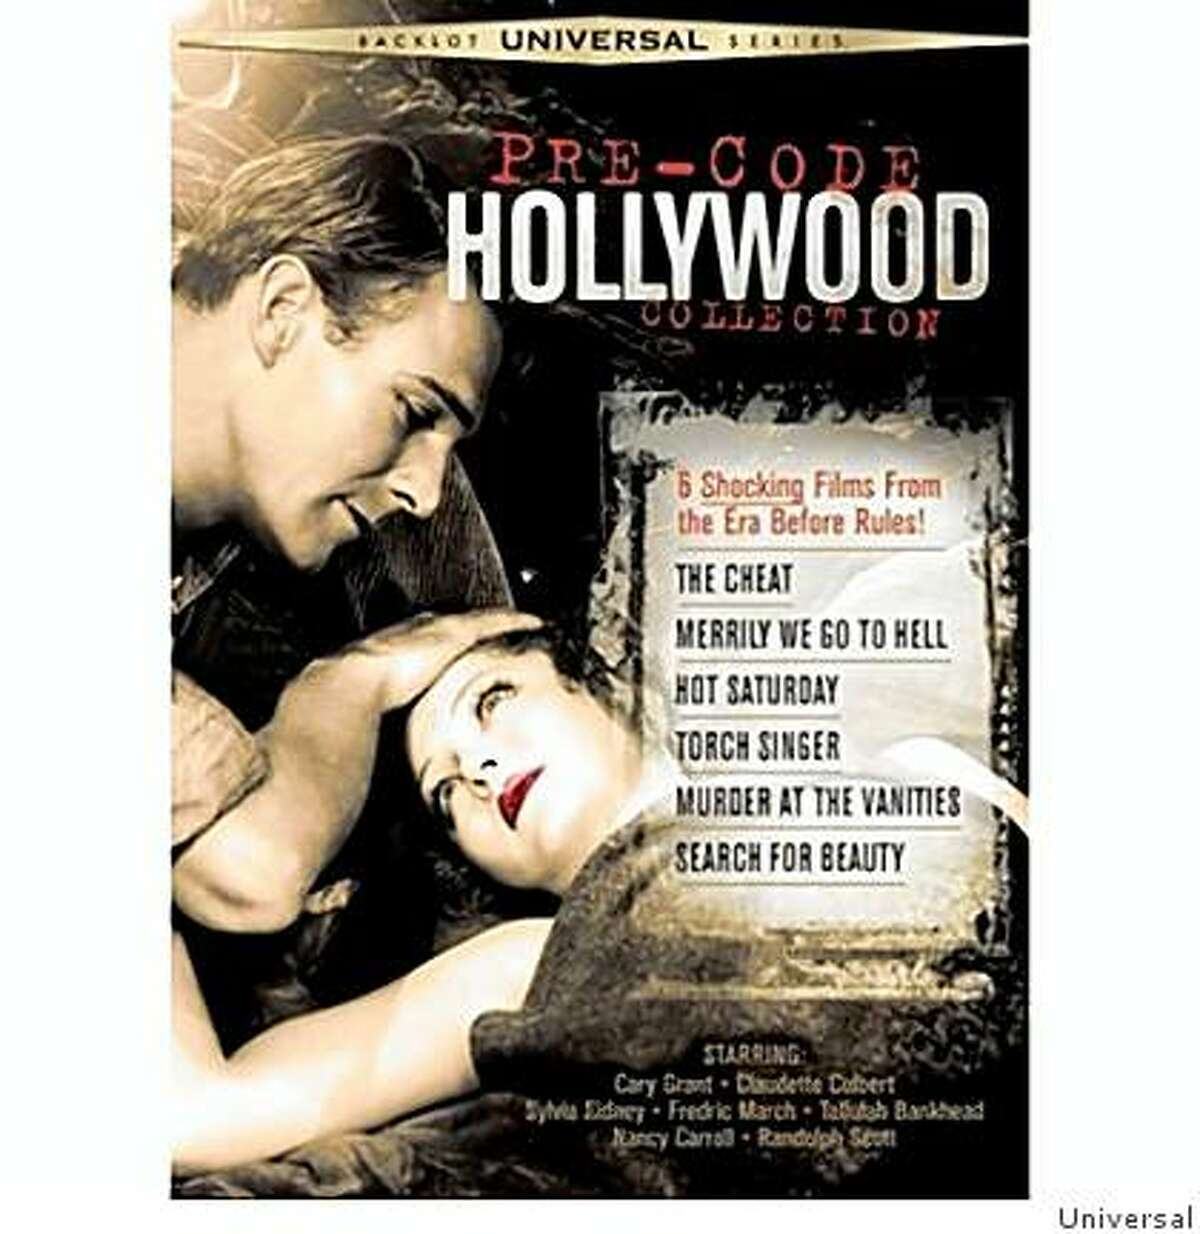 """The cover of the the DVD """"Pre-Code Hollywood Collection"""" from Universal."""